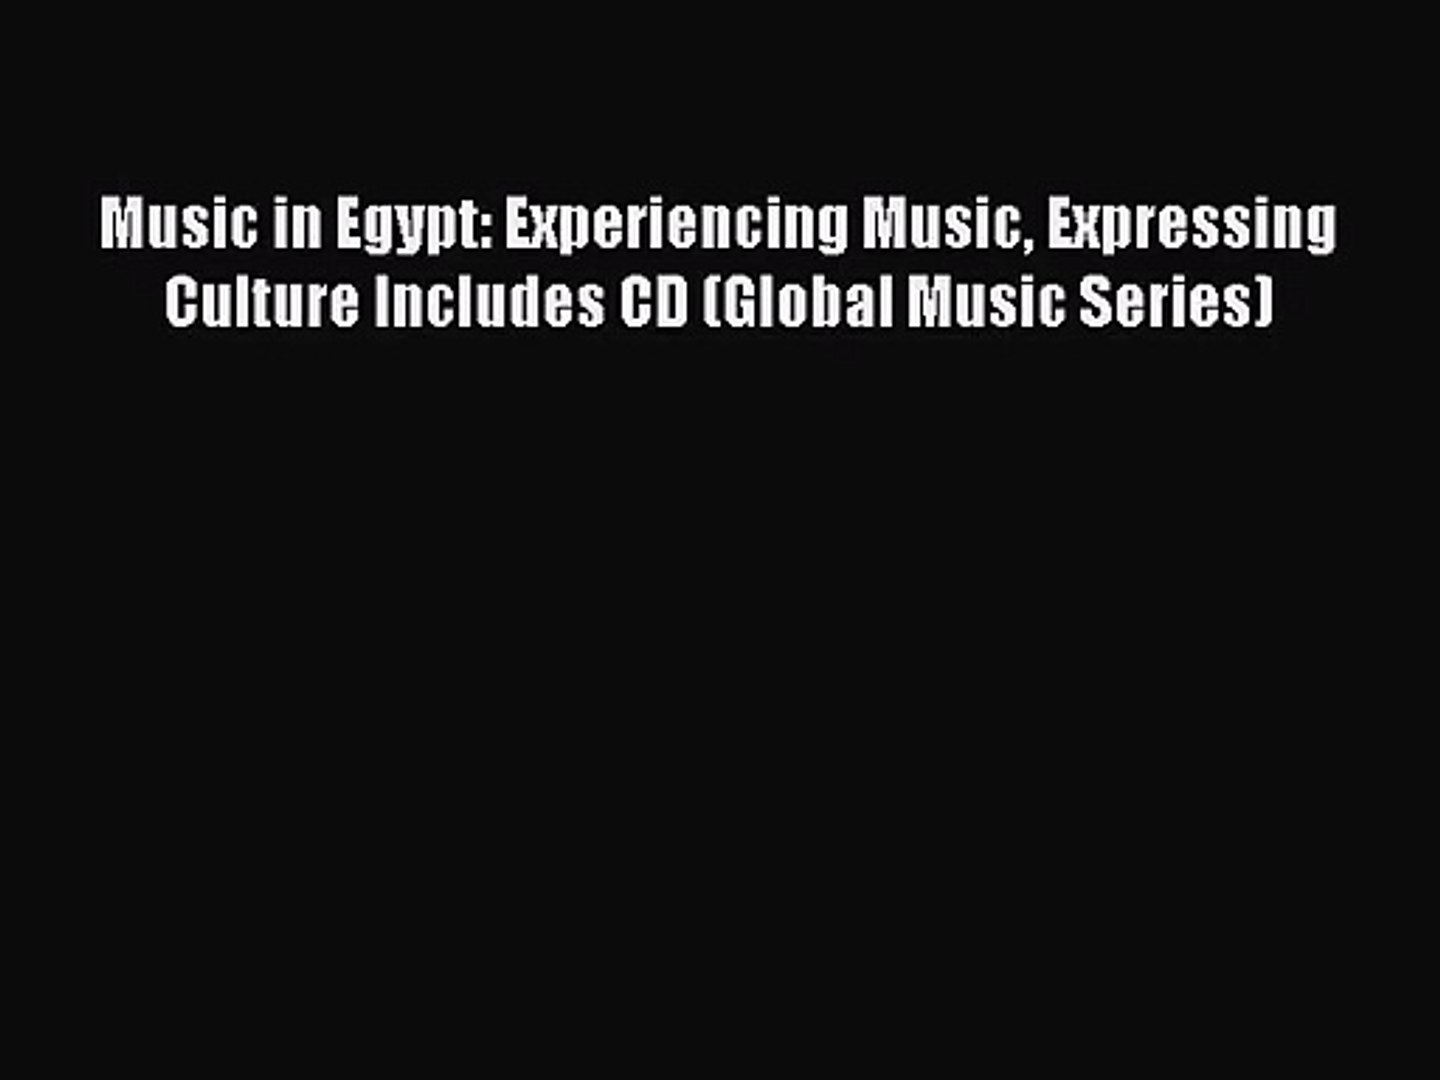 [PDF Download] Music in Egypt: Experiencing Music Expressing Culture Includes CD (Global Music